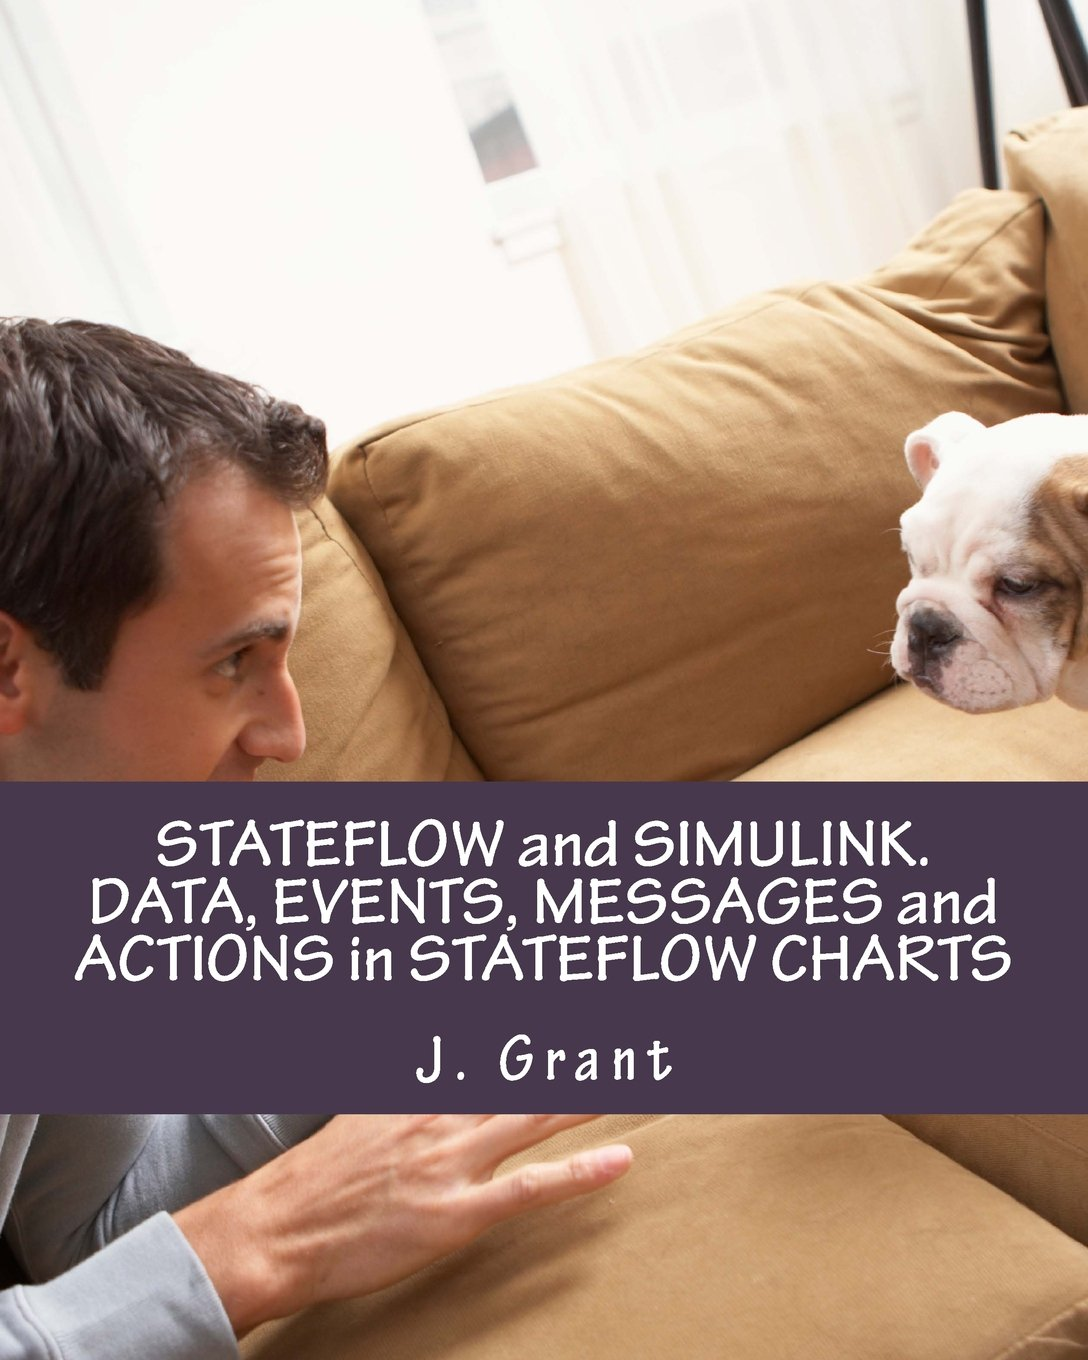 STATEFLOW and SIMULINK. DATA, EVENTS, MESSAGES and ACTIONS in STATEFLOW CHARTS PDF